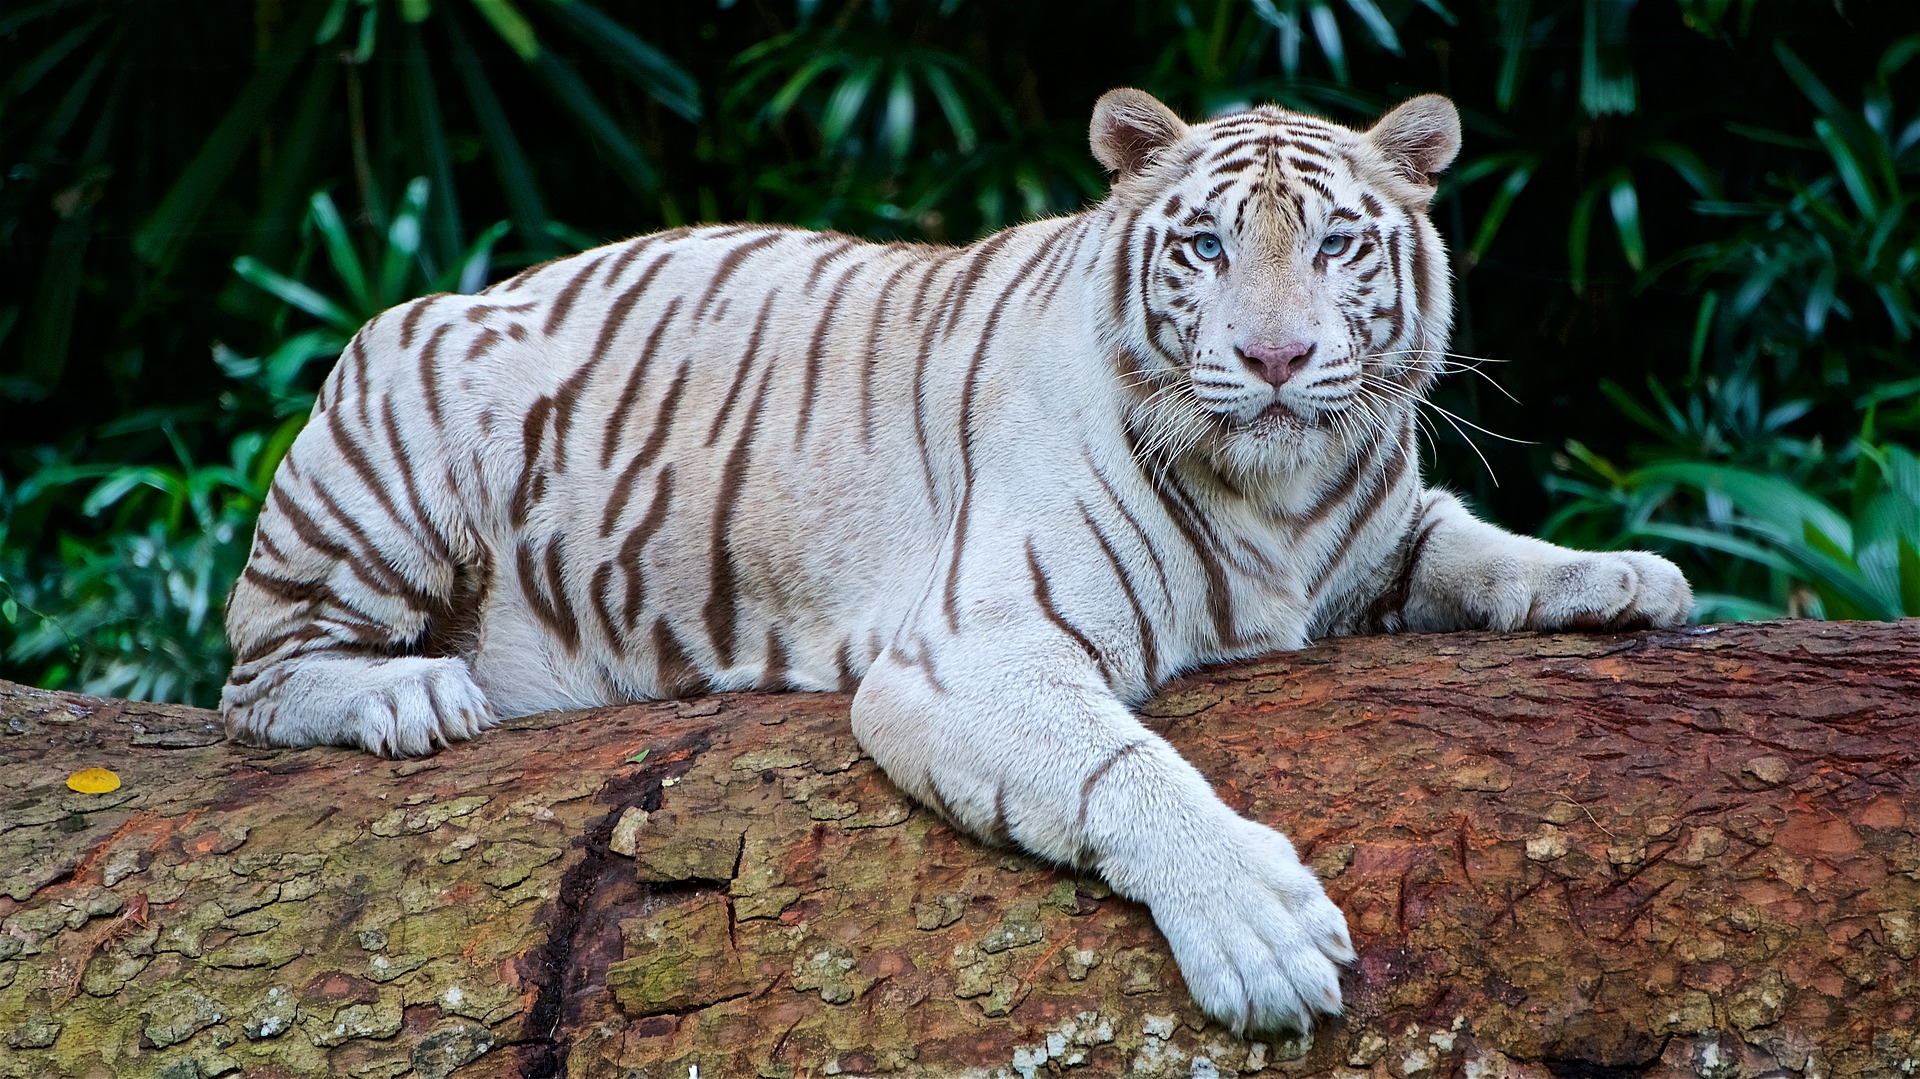 White Tiger - Siegfried & Roy's Secret Garden at The Mirage, Las Vegas